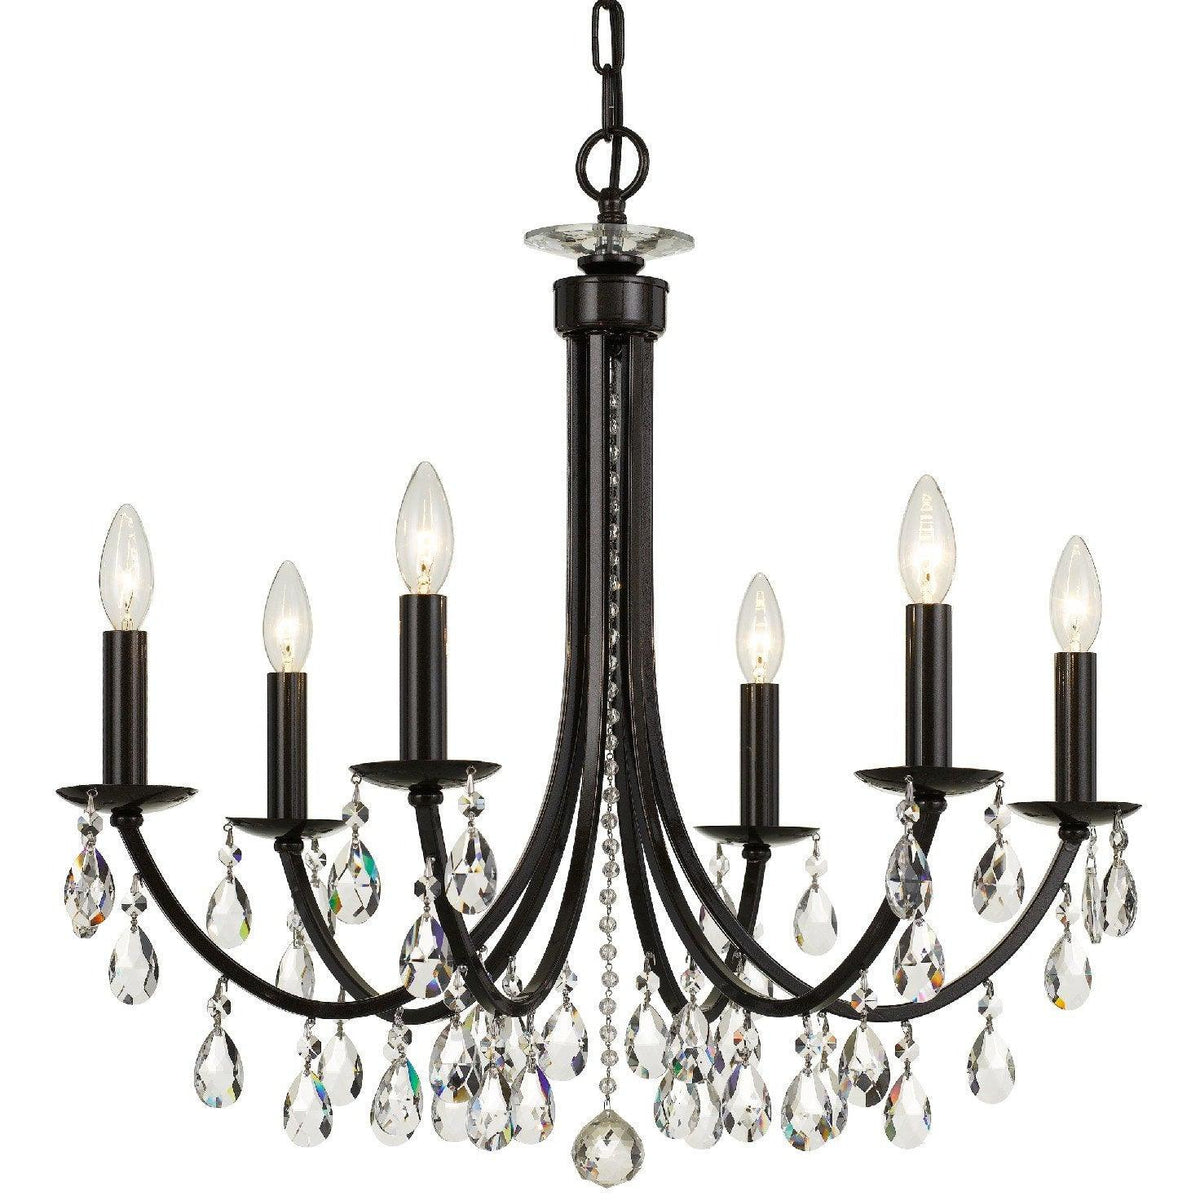 Crystorama - 8826-VZ-CL-MWP - Six Light Chandelier - Bridgehampton - Vibrant Bronze